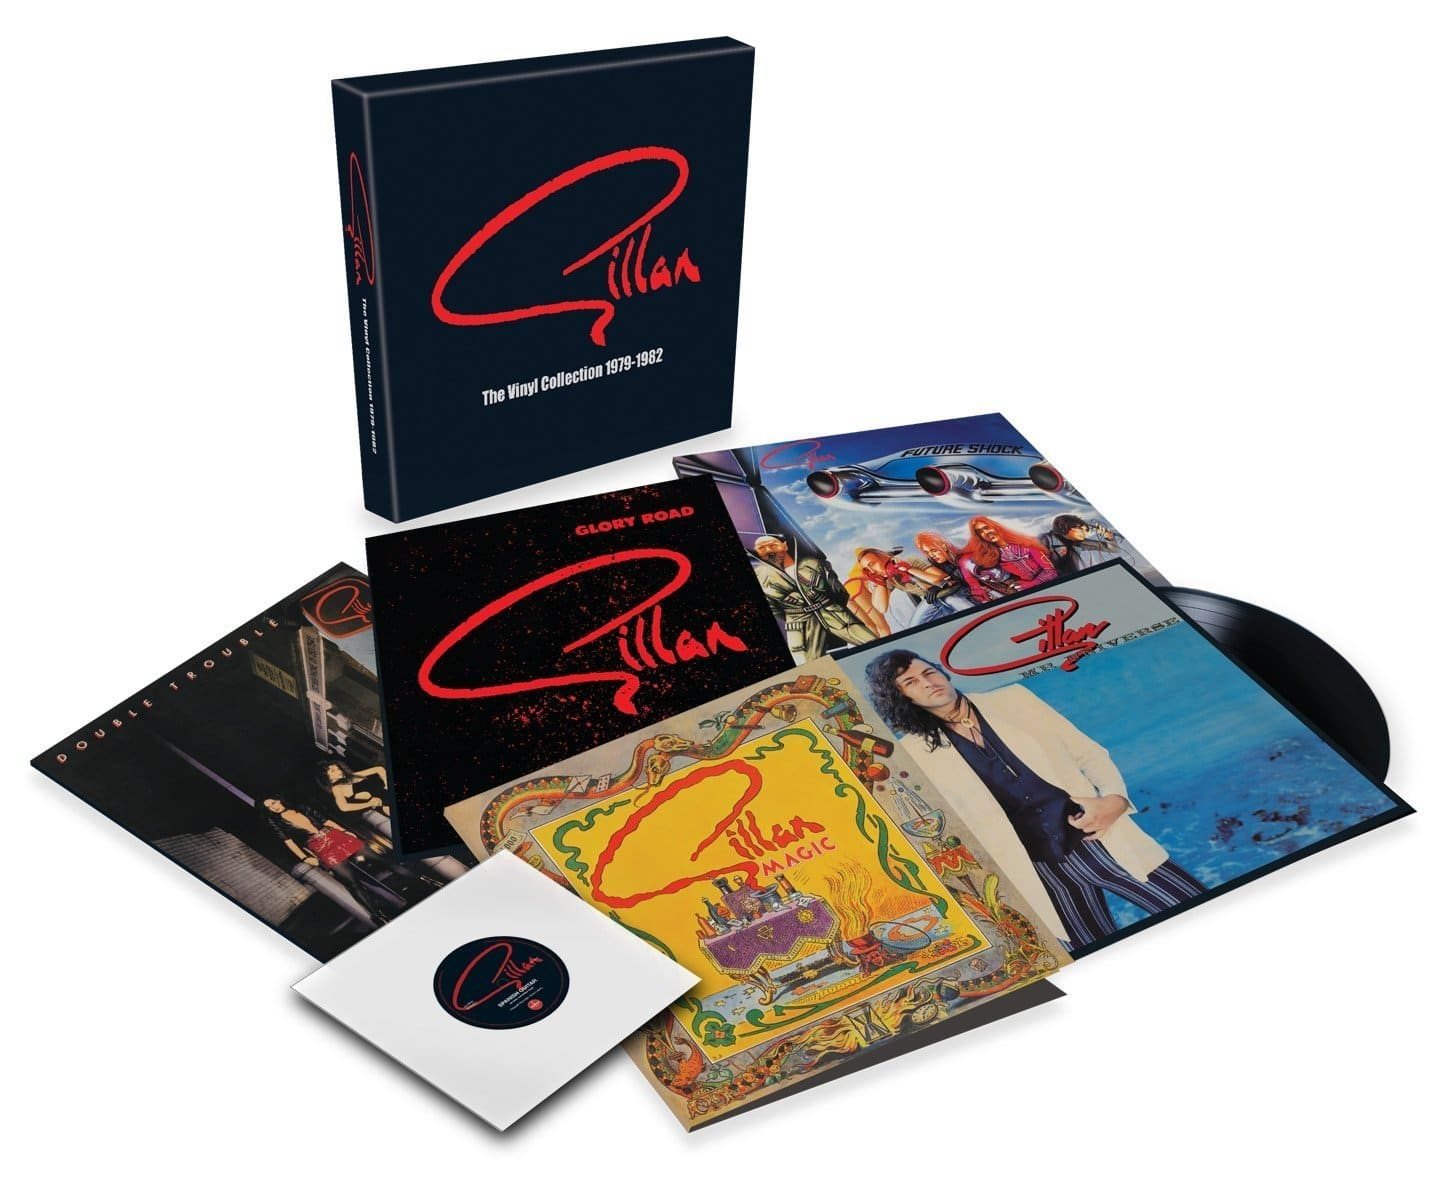 gillan-the-vinyl-collection